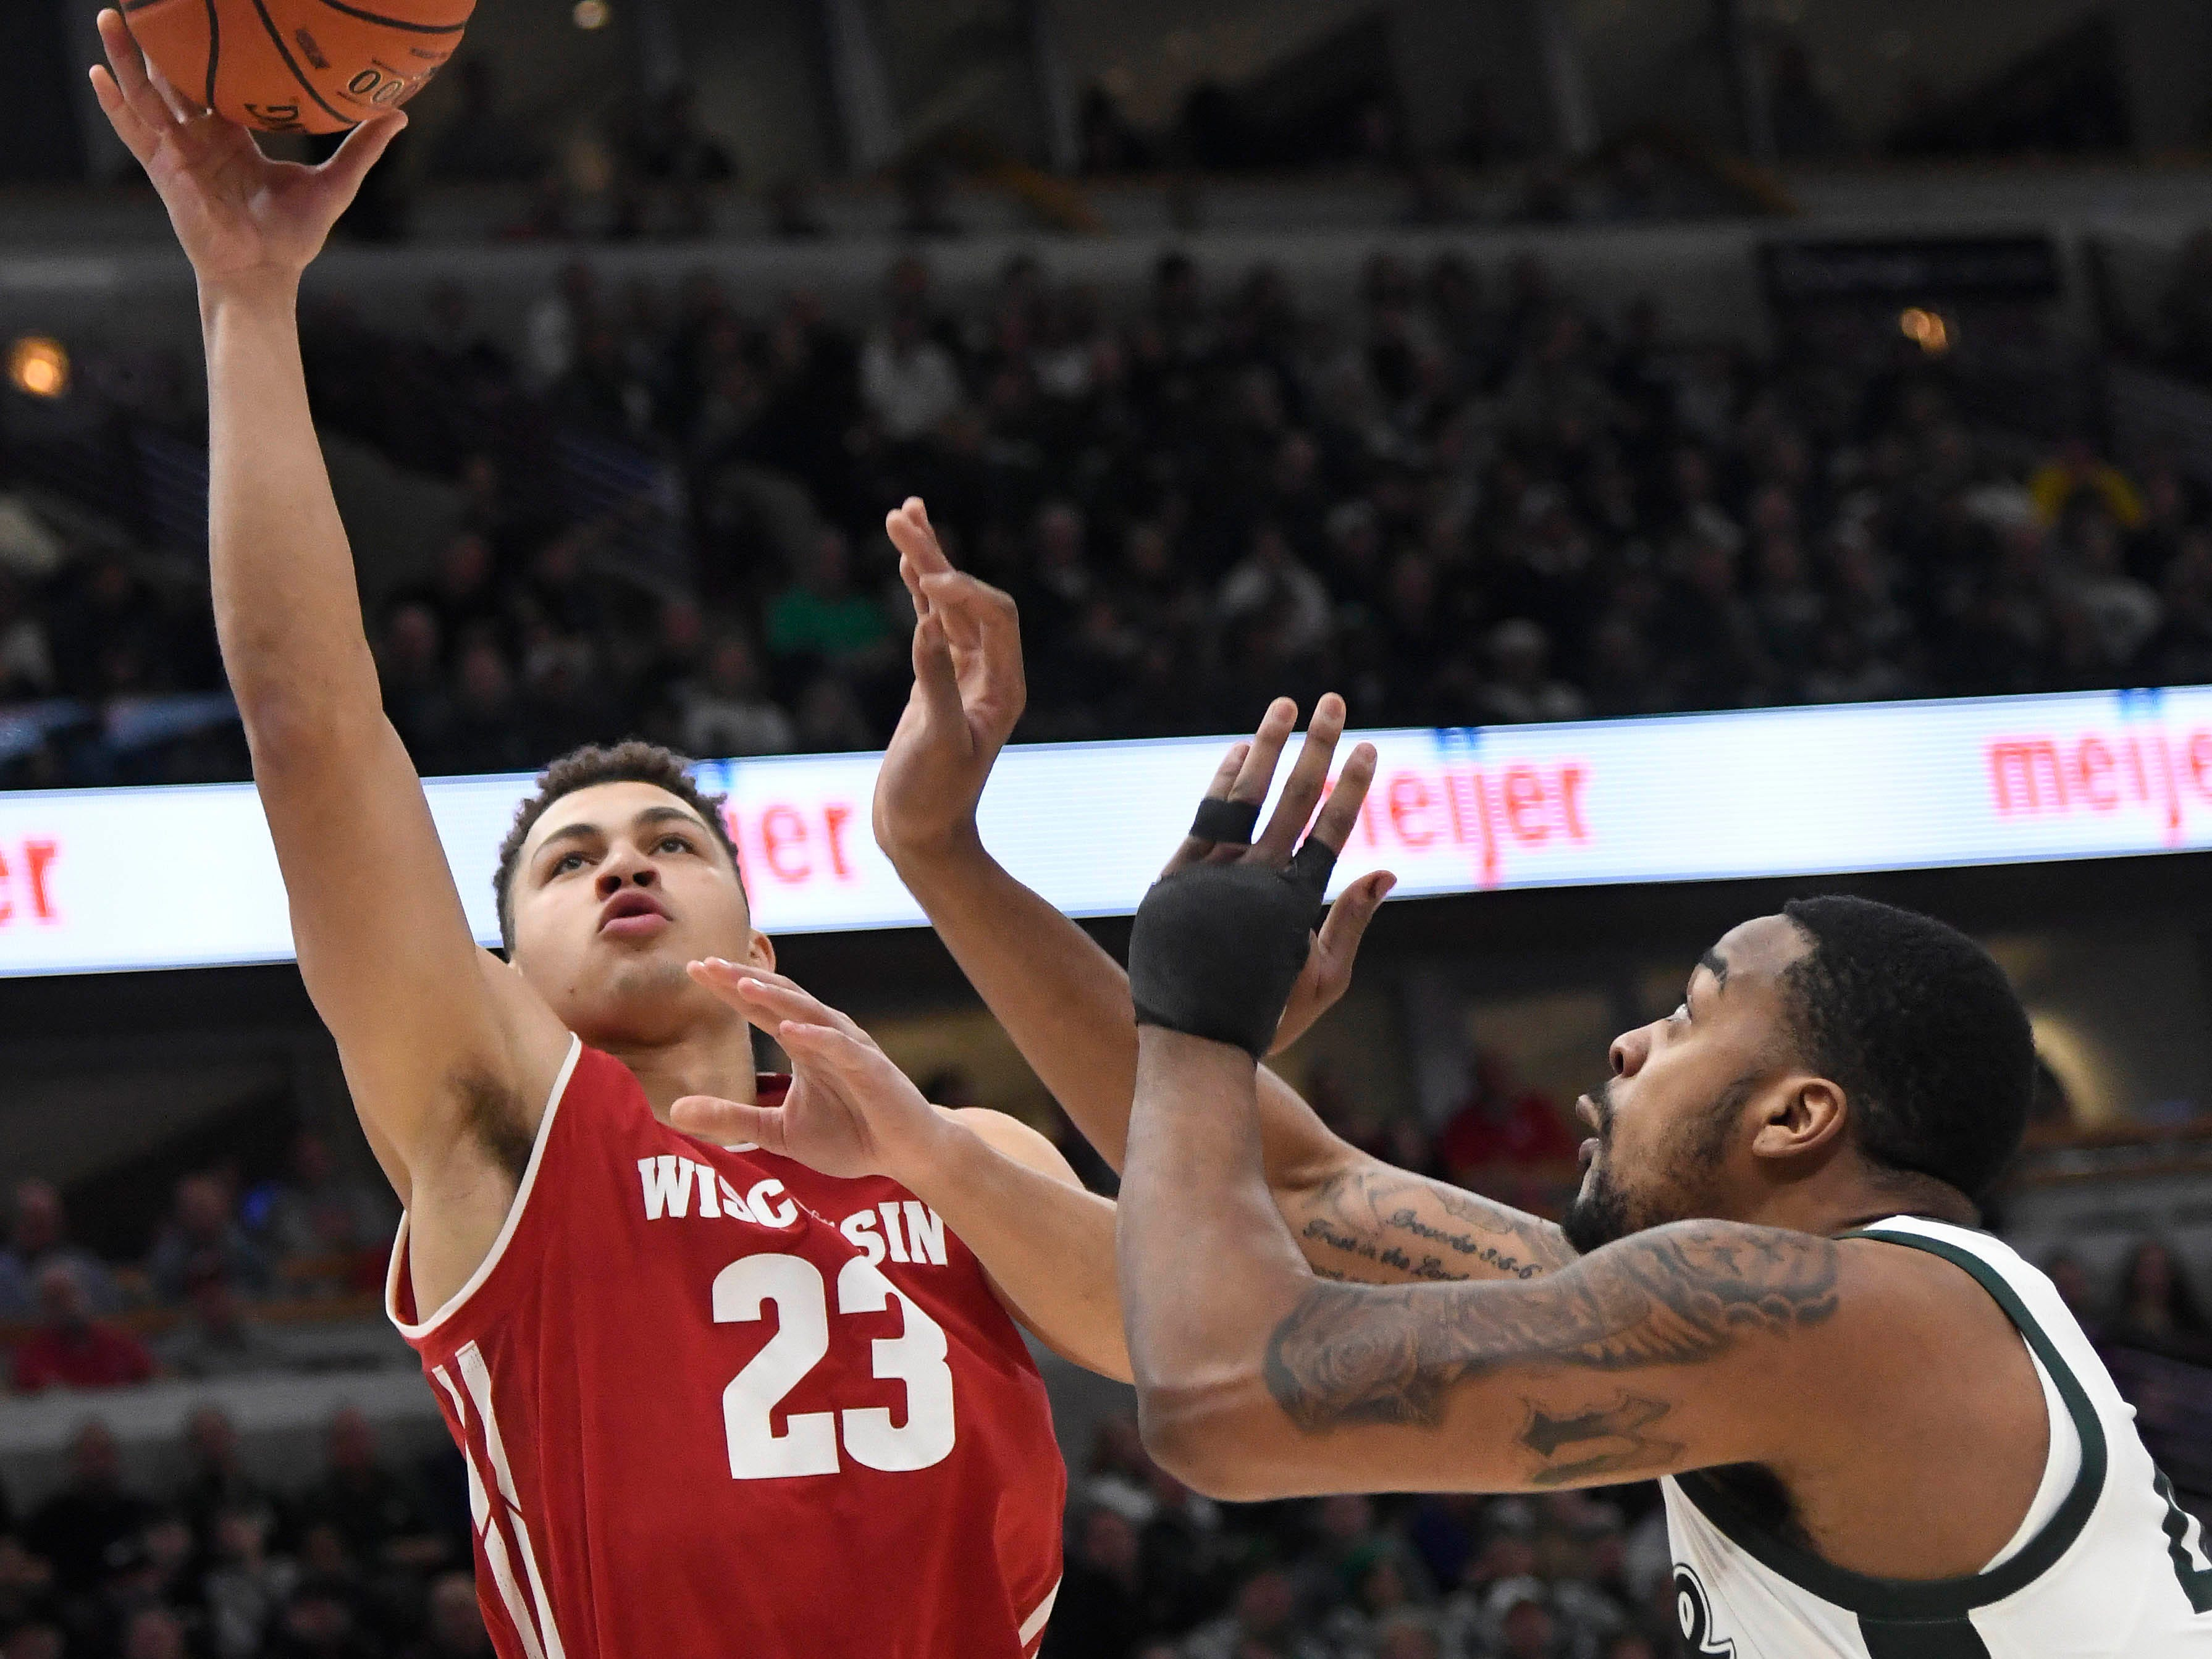 Kobe King of the Badgers goes up for a shot near the basket against Michigan State forward Nick Ward during the first half.